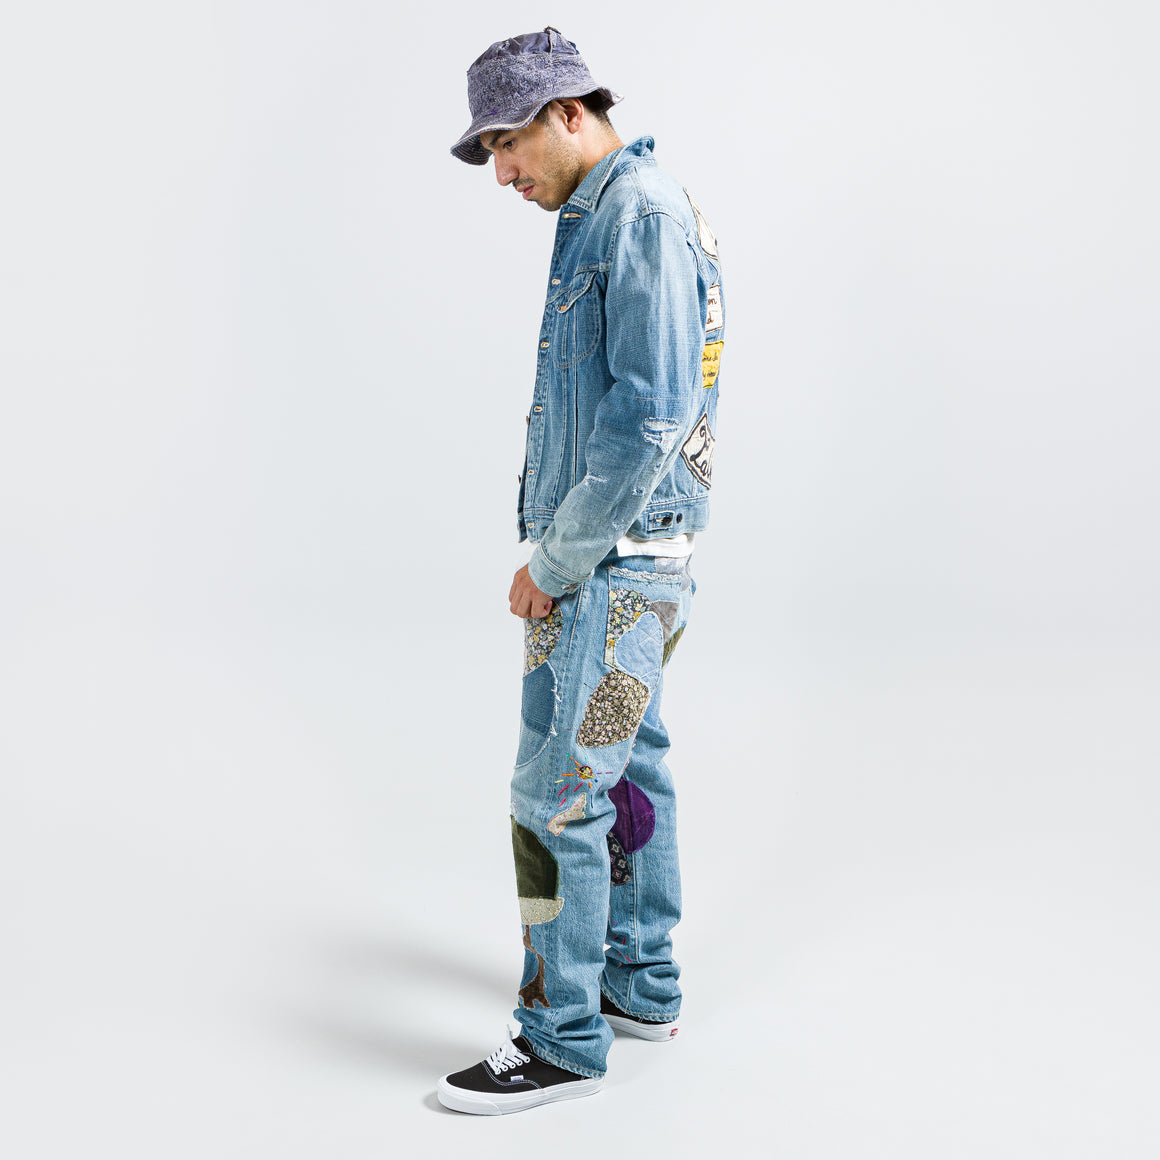 Kapital - 14oz Denim MARLEY UPRISING Jacket - Light - Up There